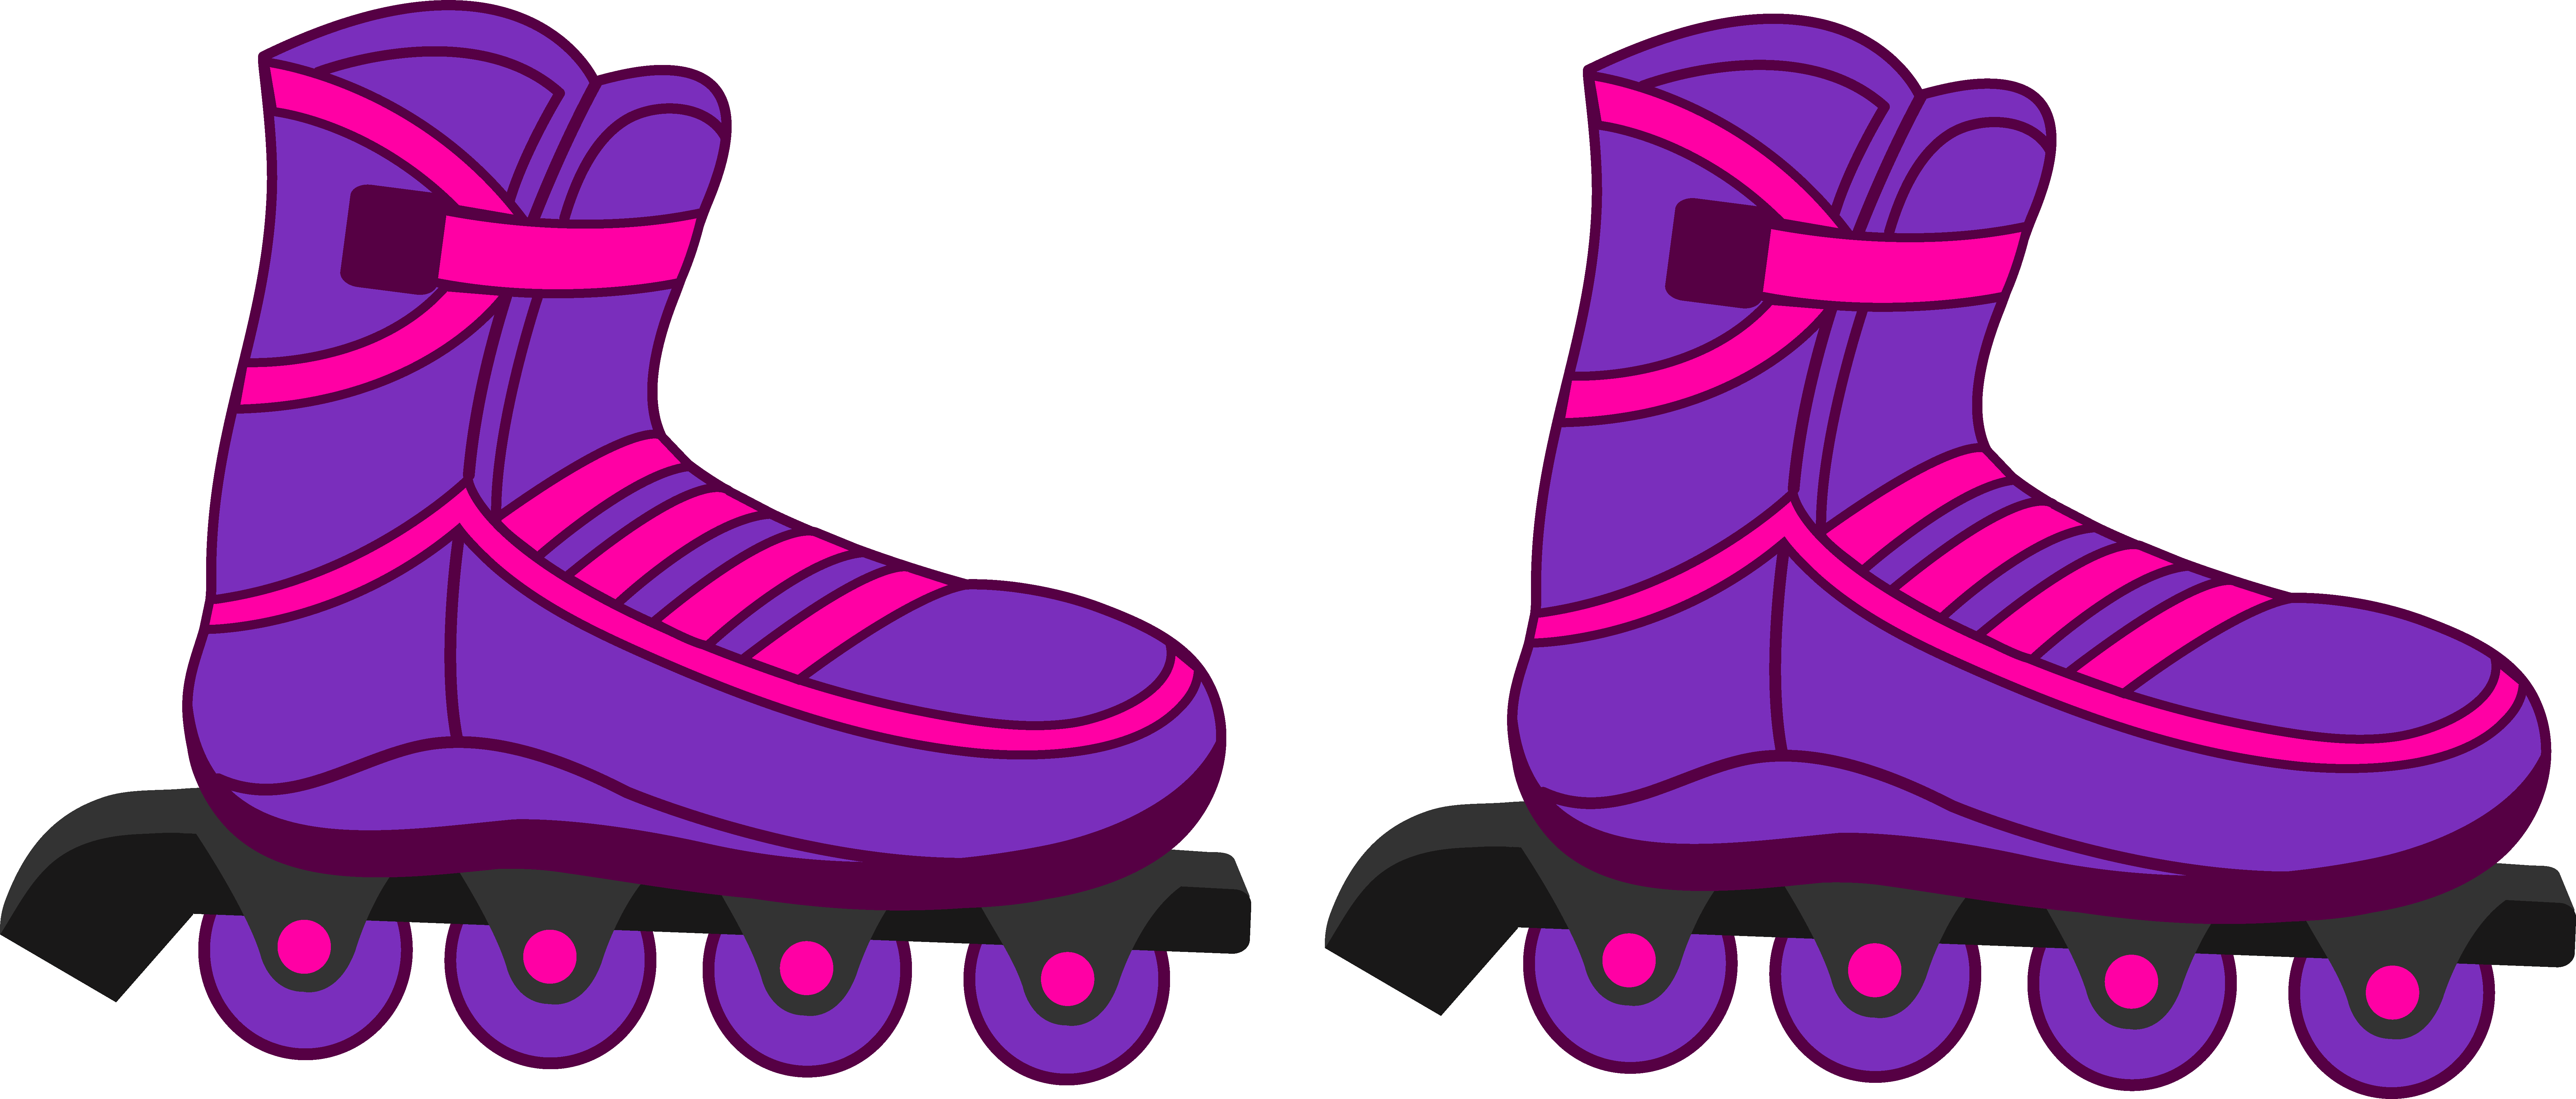 8285x3534 Image Result For Simple Inline Skates Clipart Cake Decorating